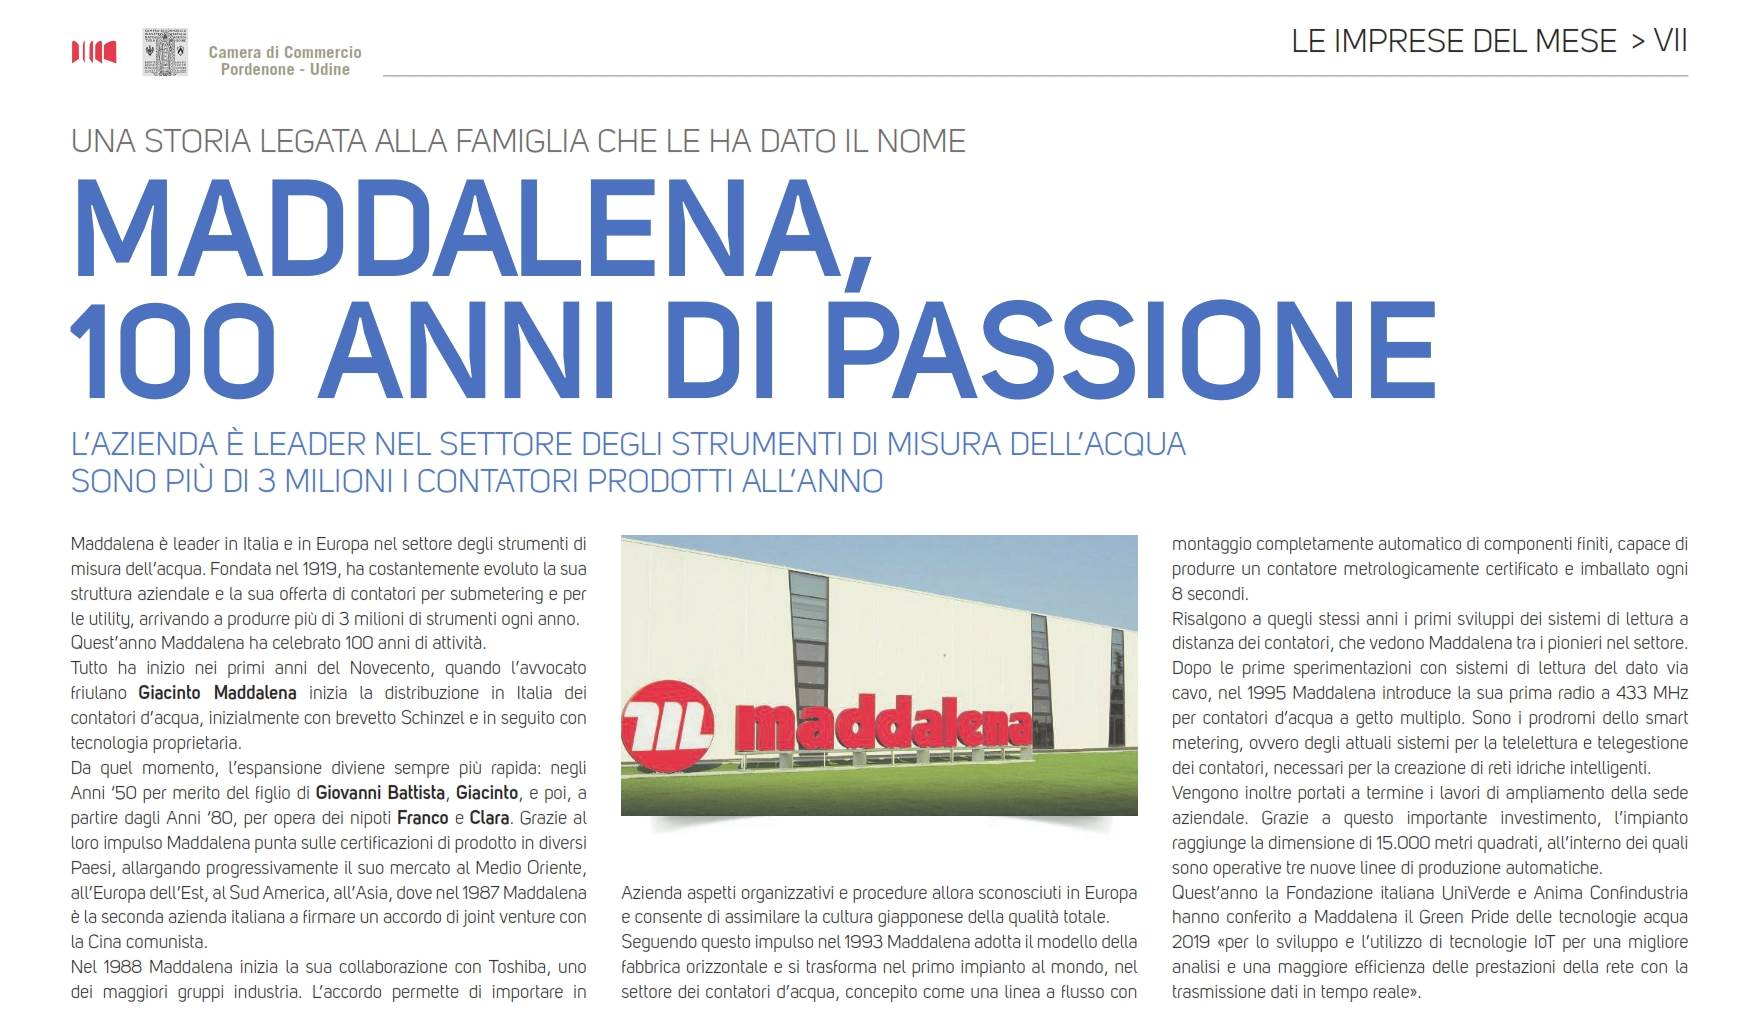 Messaggero Veneto 30 Oct. 2019 Maddalena, 100 years of passion